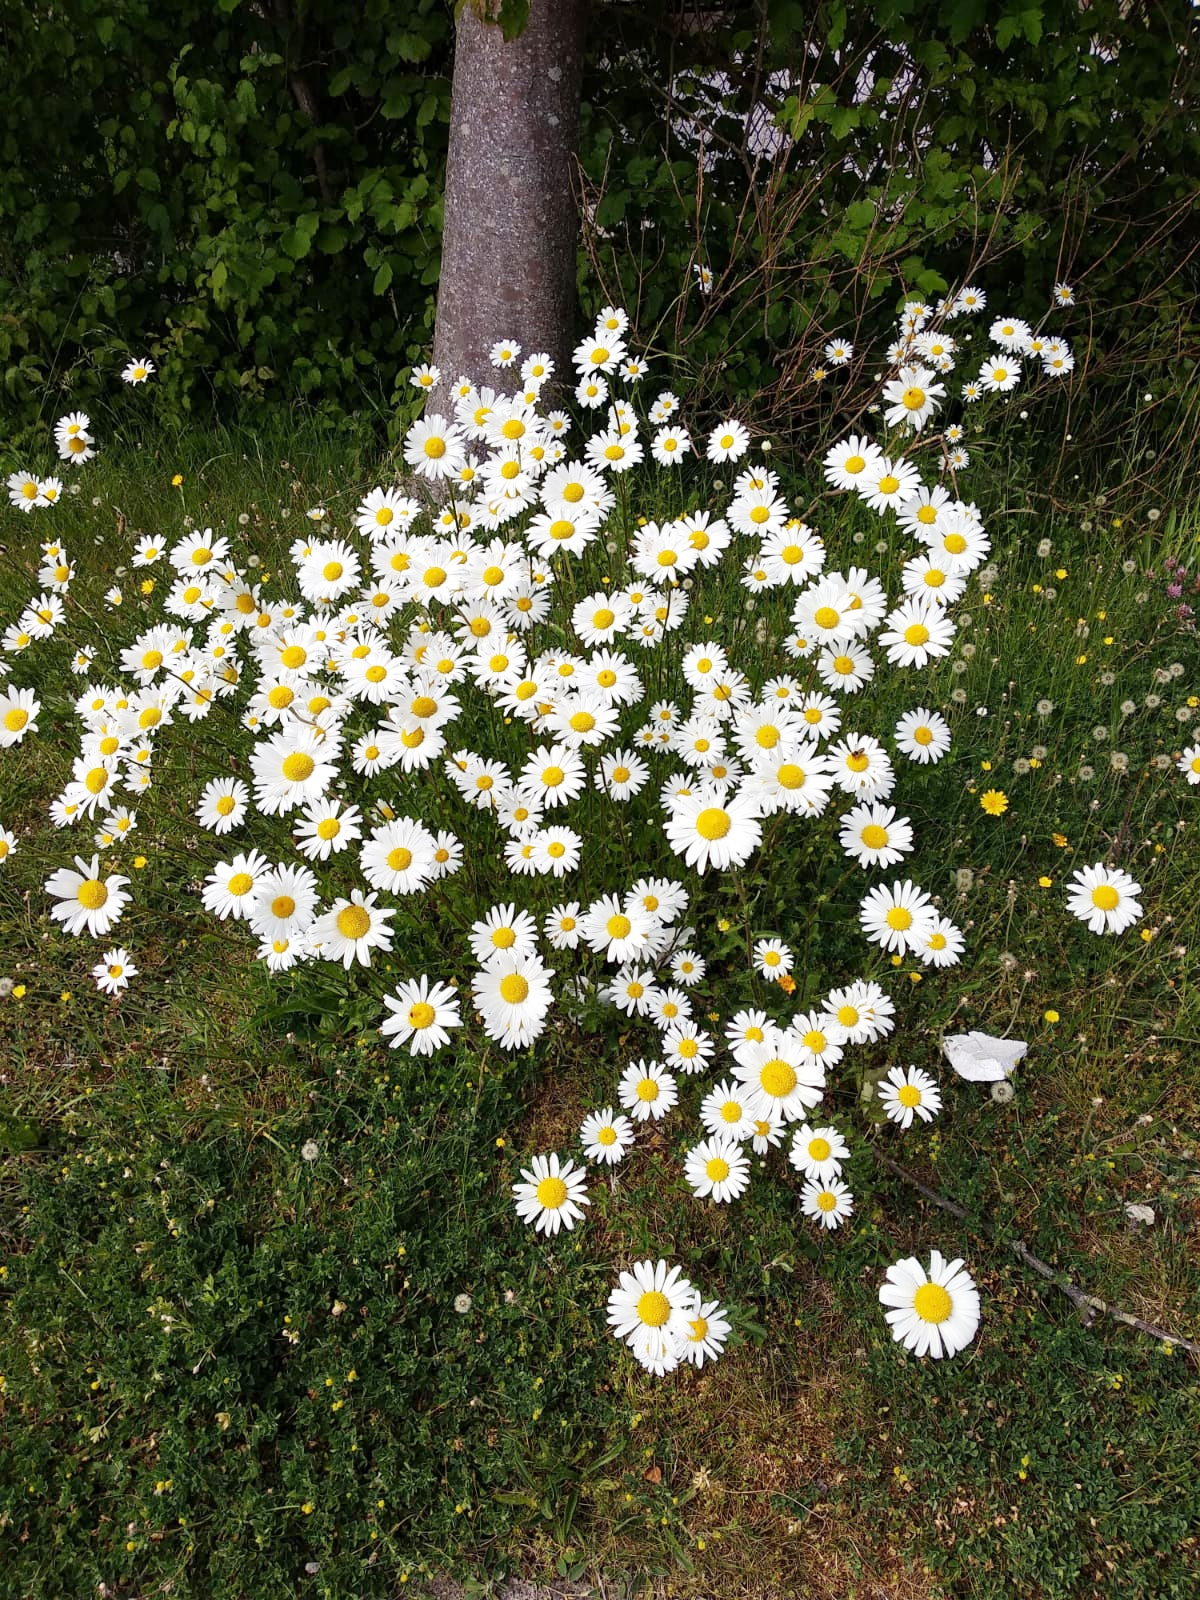 A group of daisies in the wild